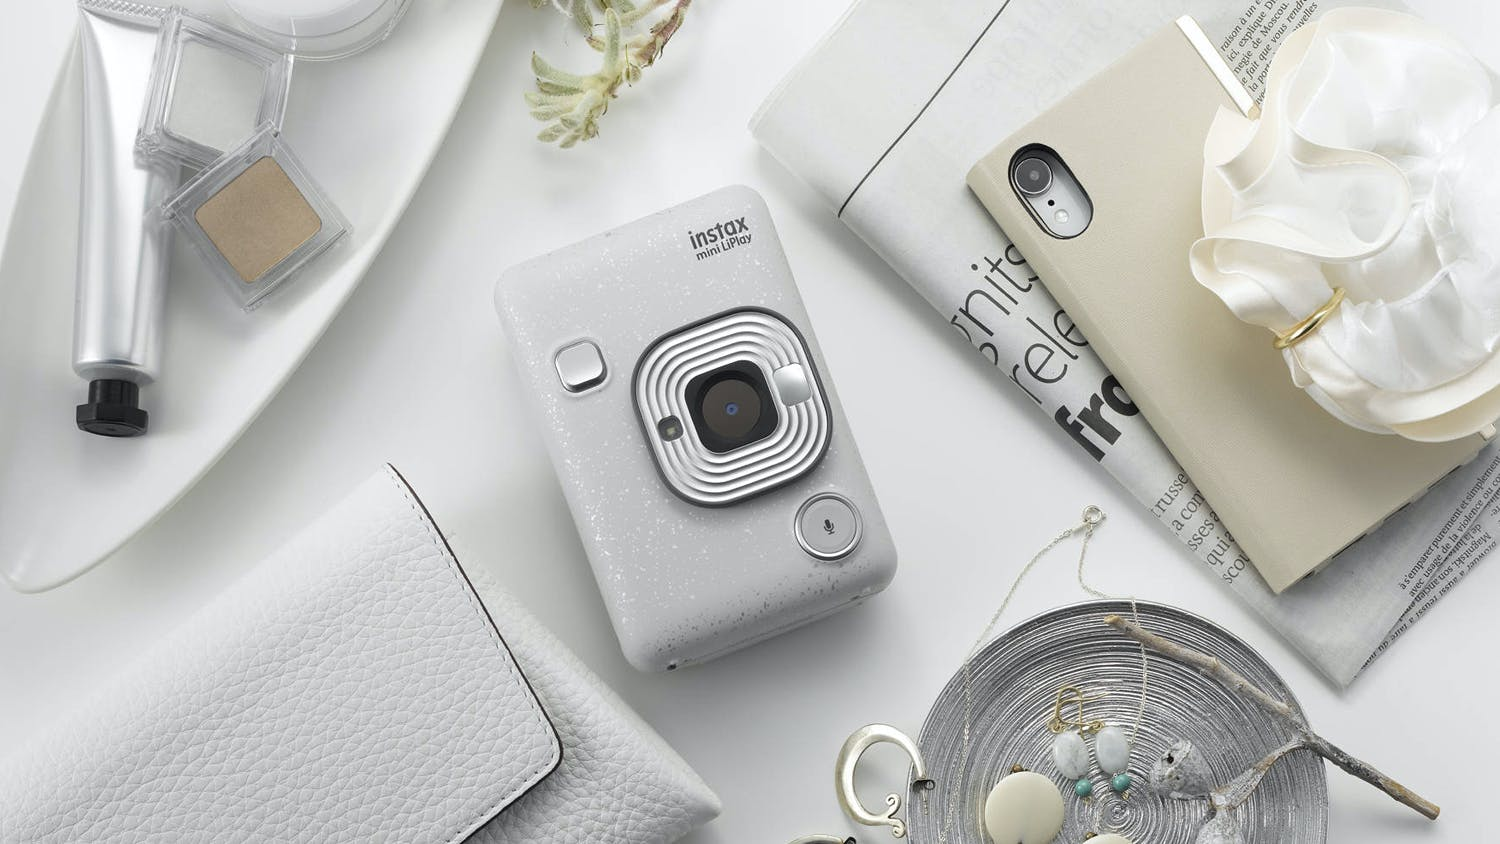 Instax Mini LiPlay - White